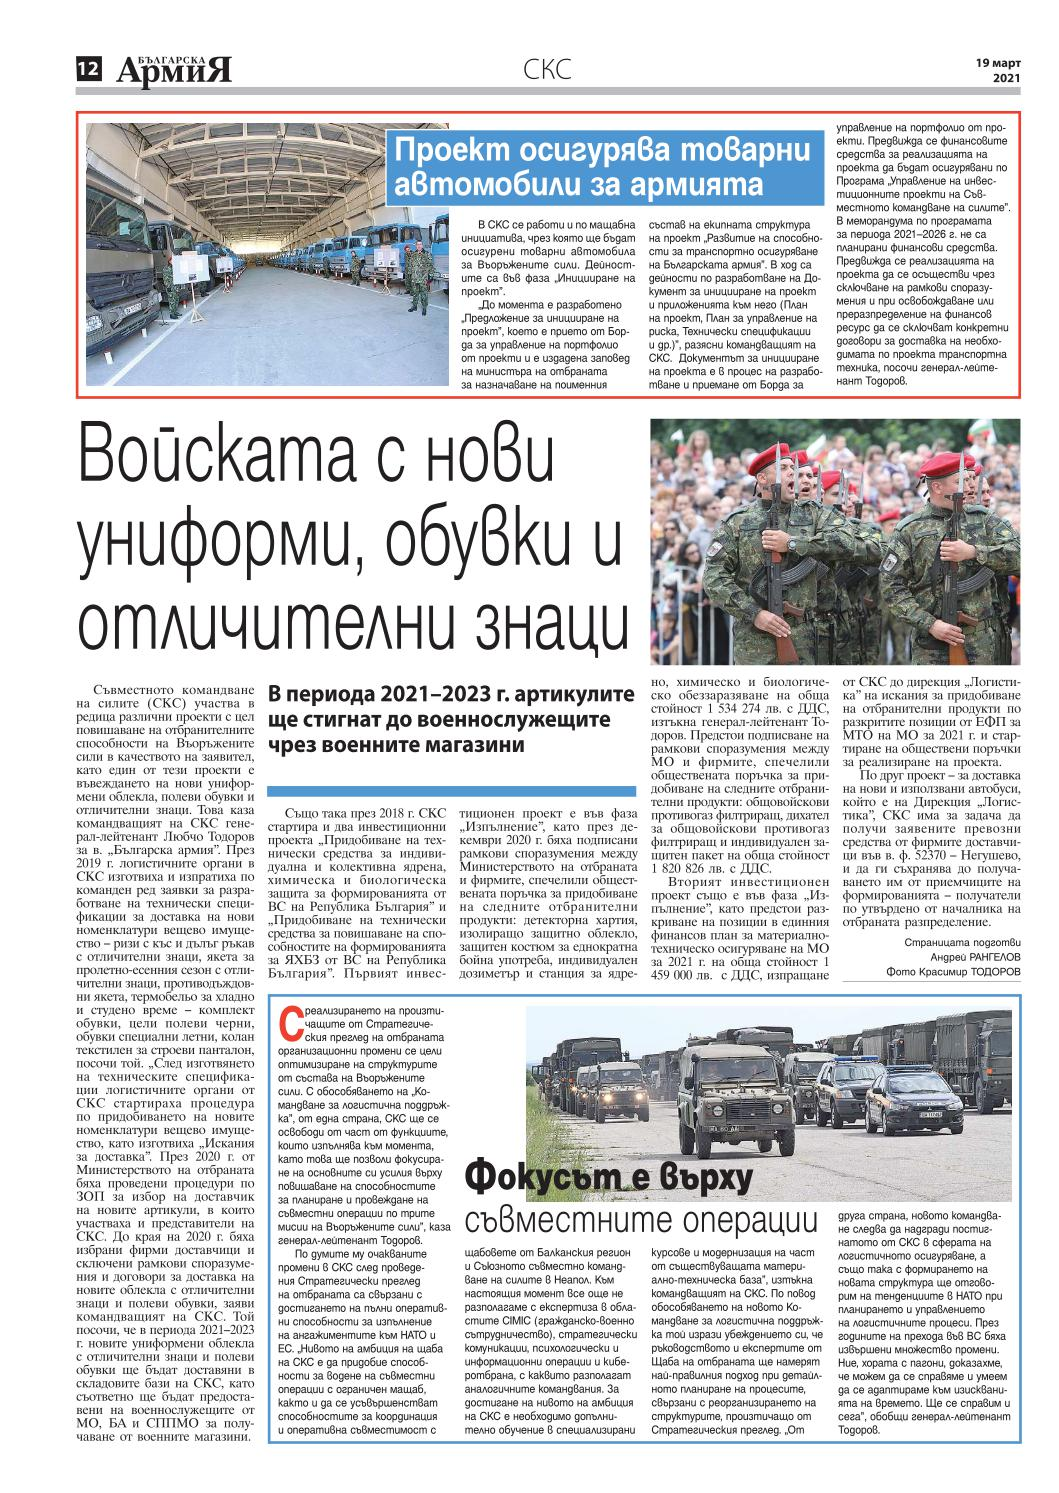 https://armymedia.bg/wp-content/uploads/2021/04/12.page1_-154.jpg